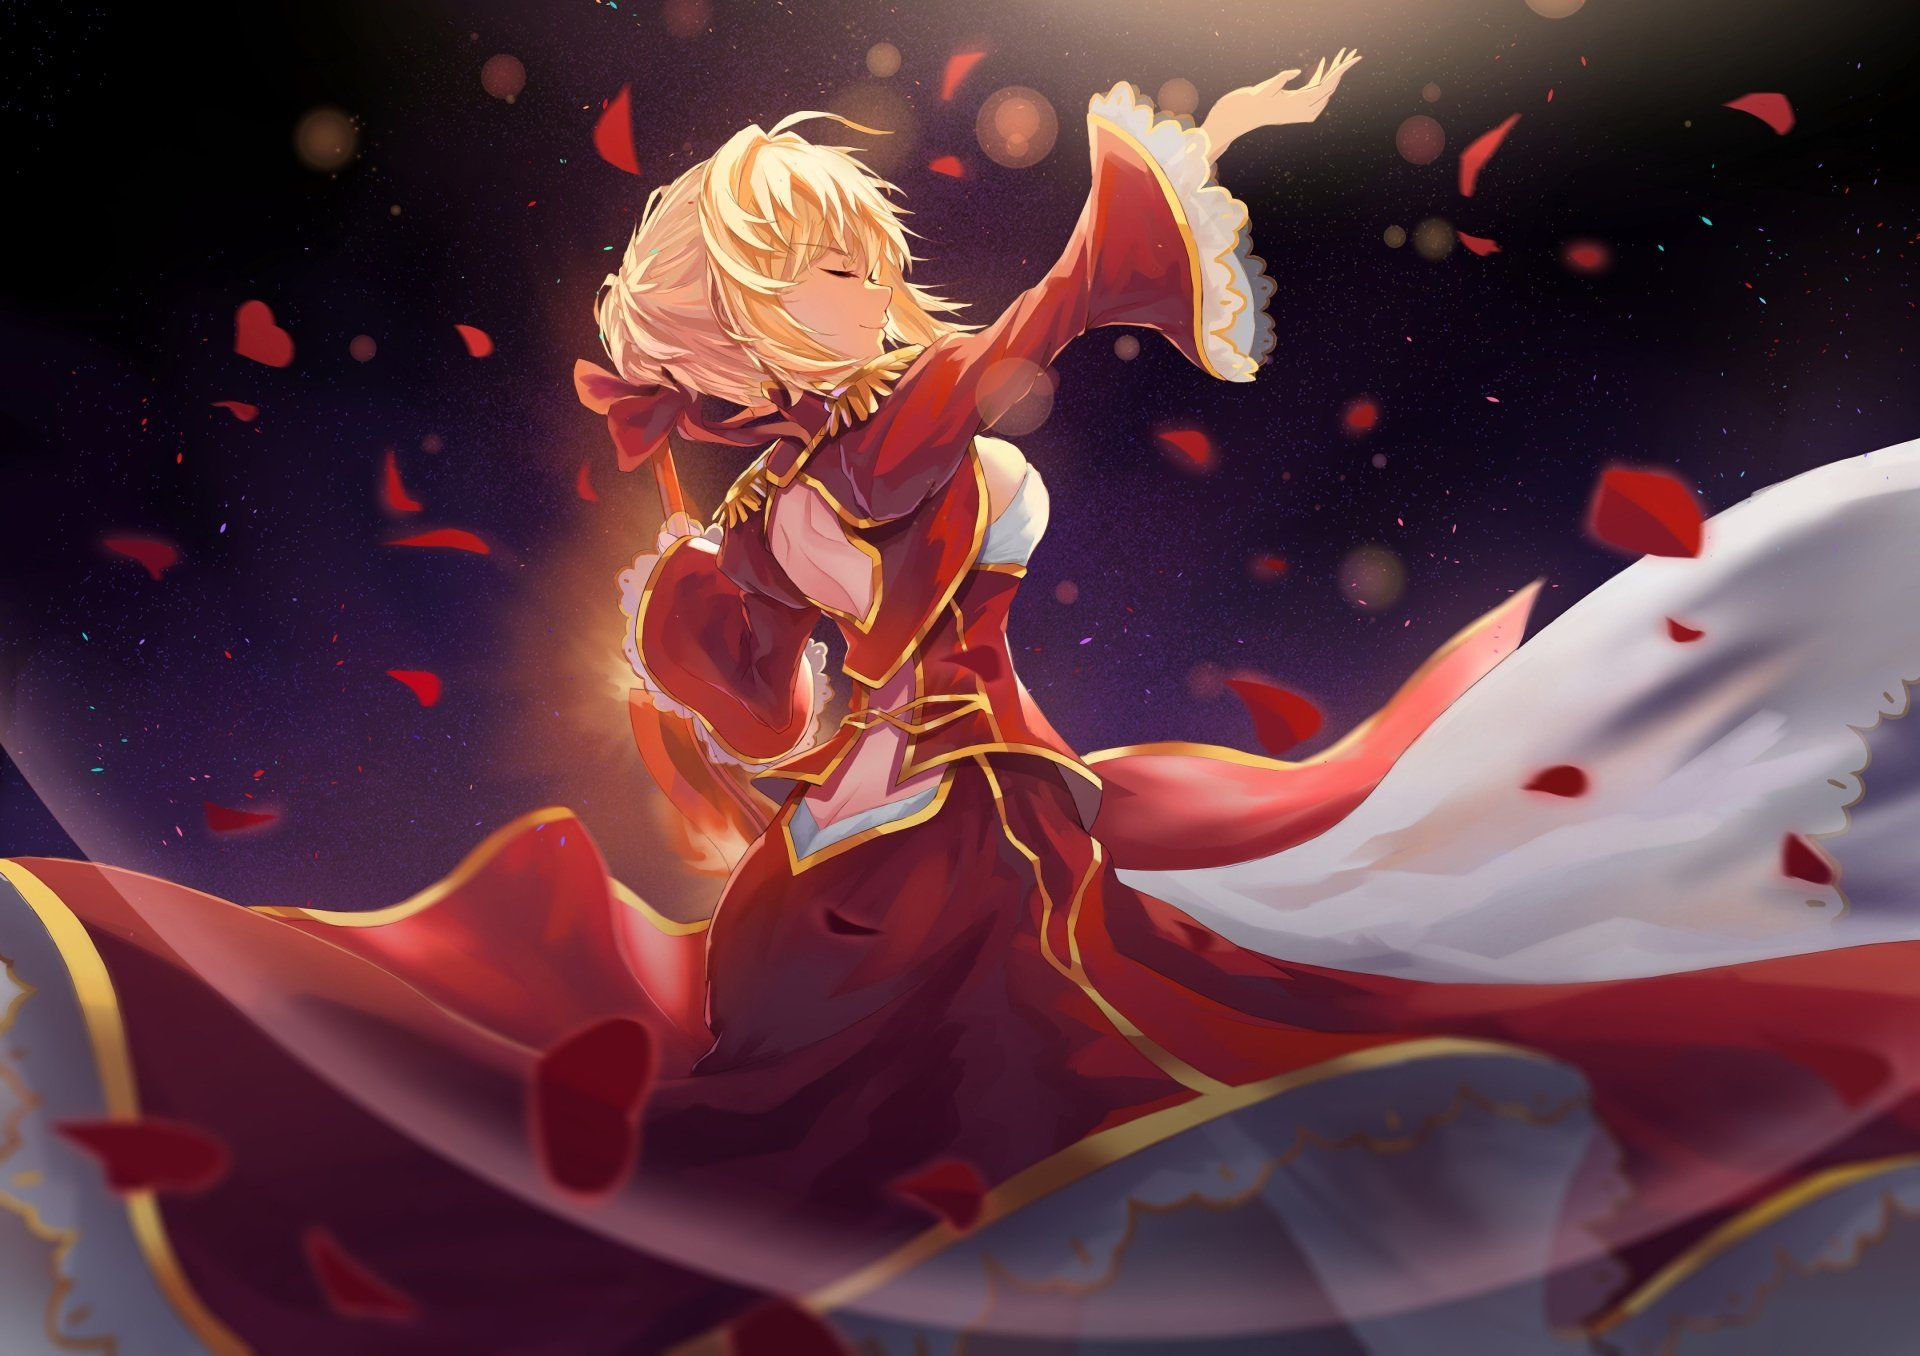 Fate Extra Last Encore Wallpapers Top Free Fate Extra Last Encore Backgrounds Wallpaperaccess